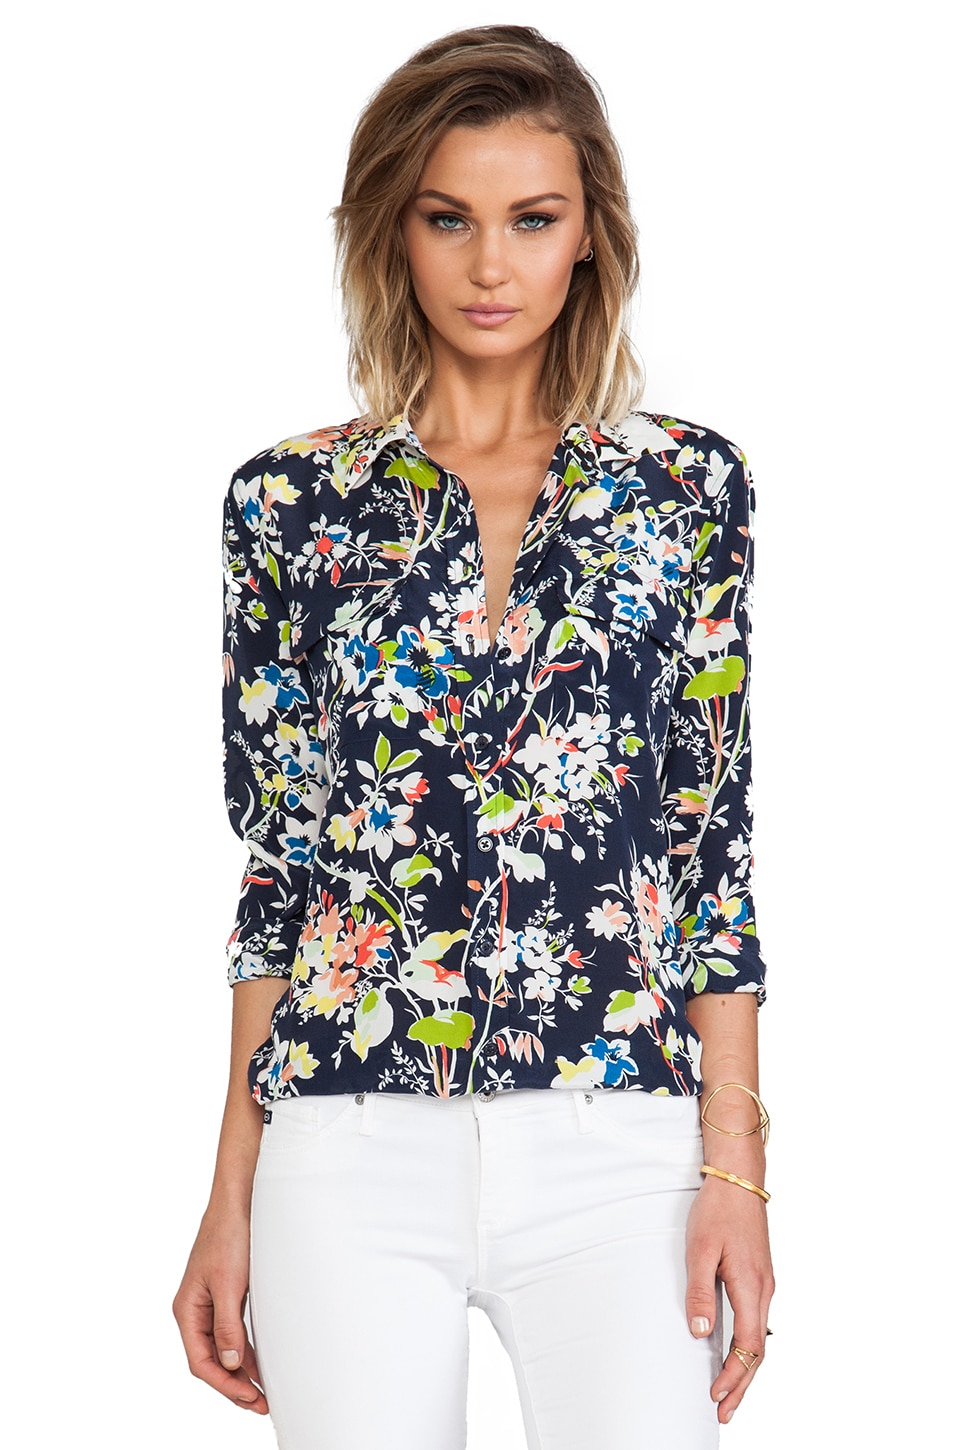 Equipment Slim Signature Floral Demonstration Blouse in Peacoat